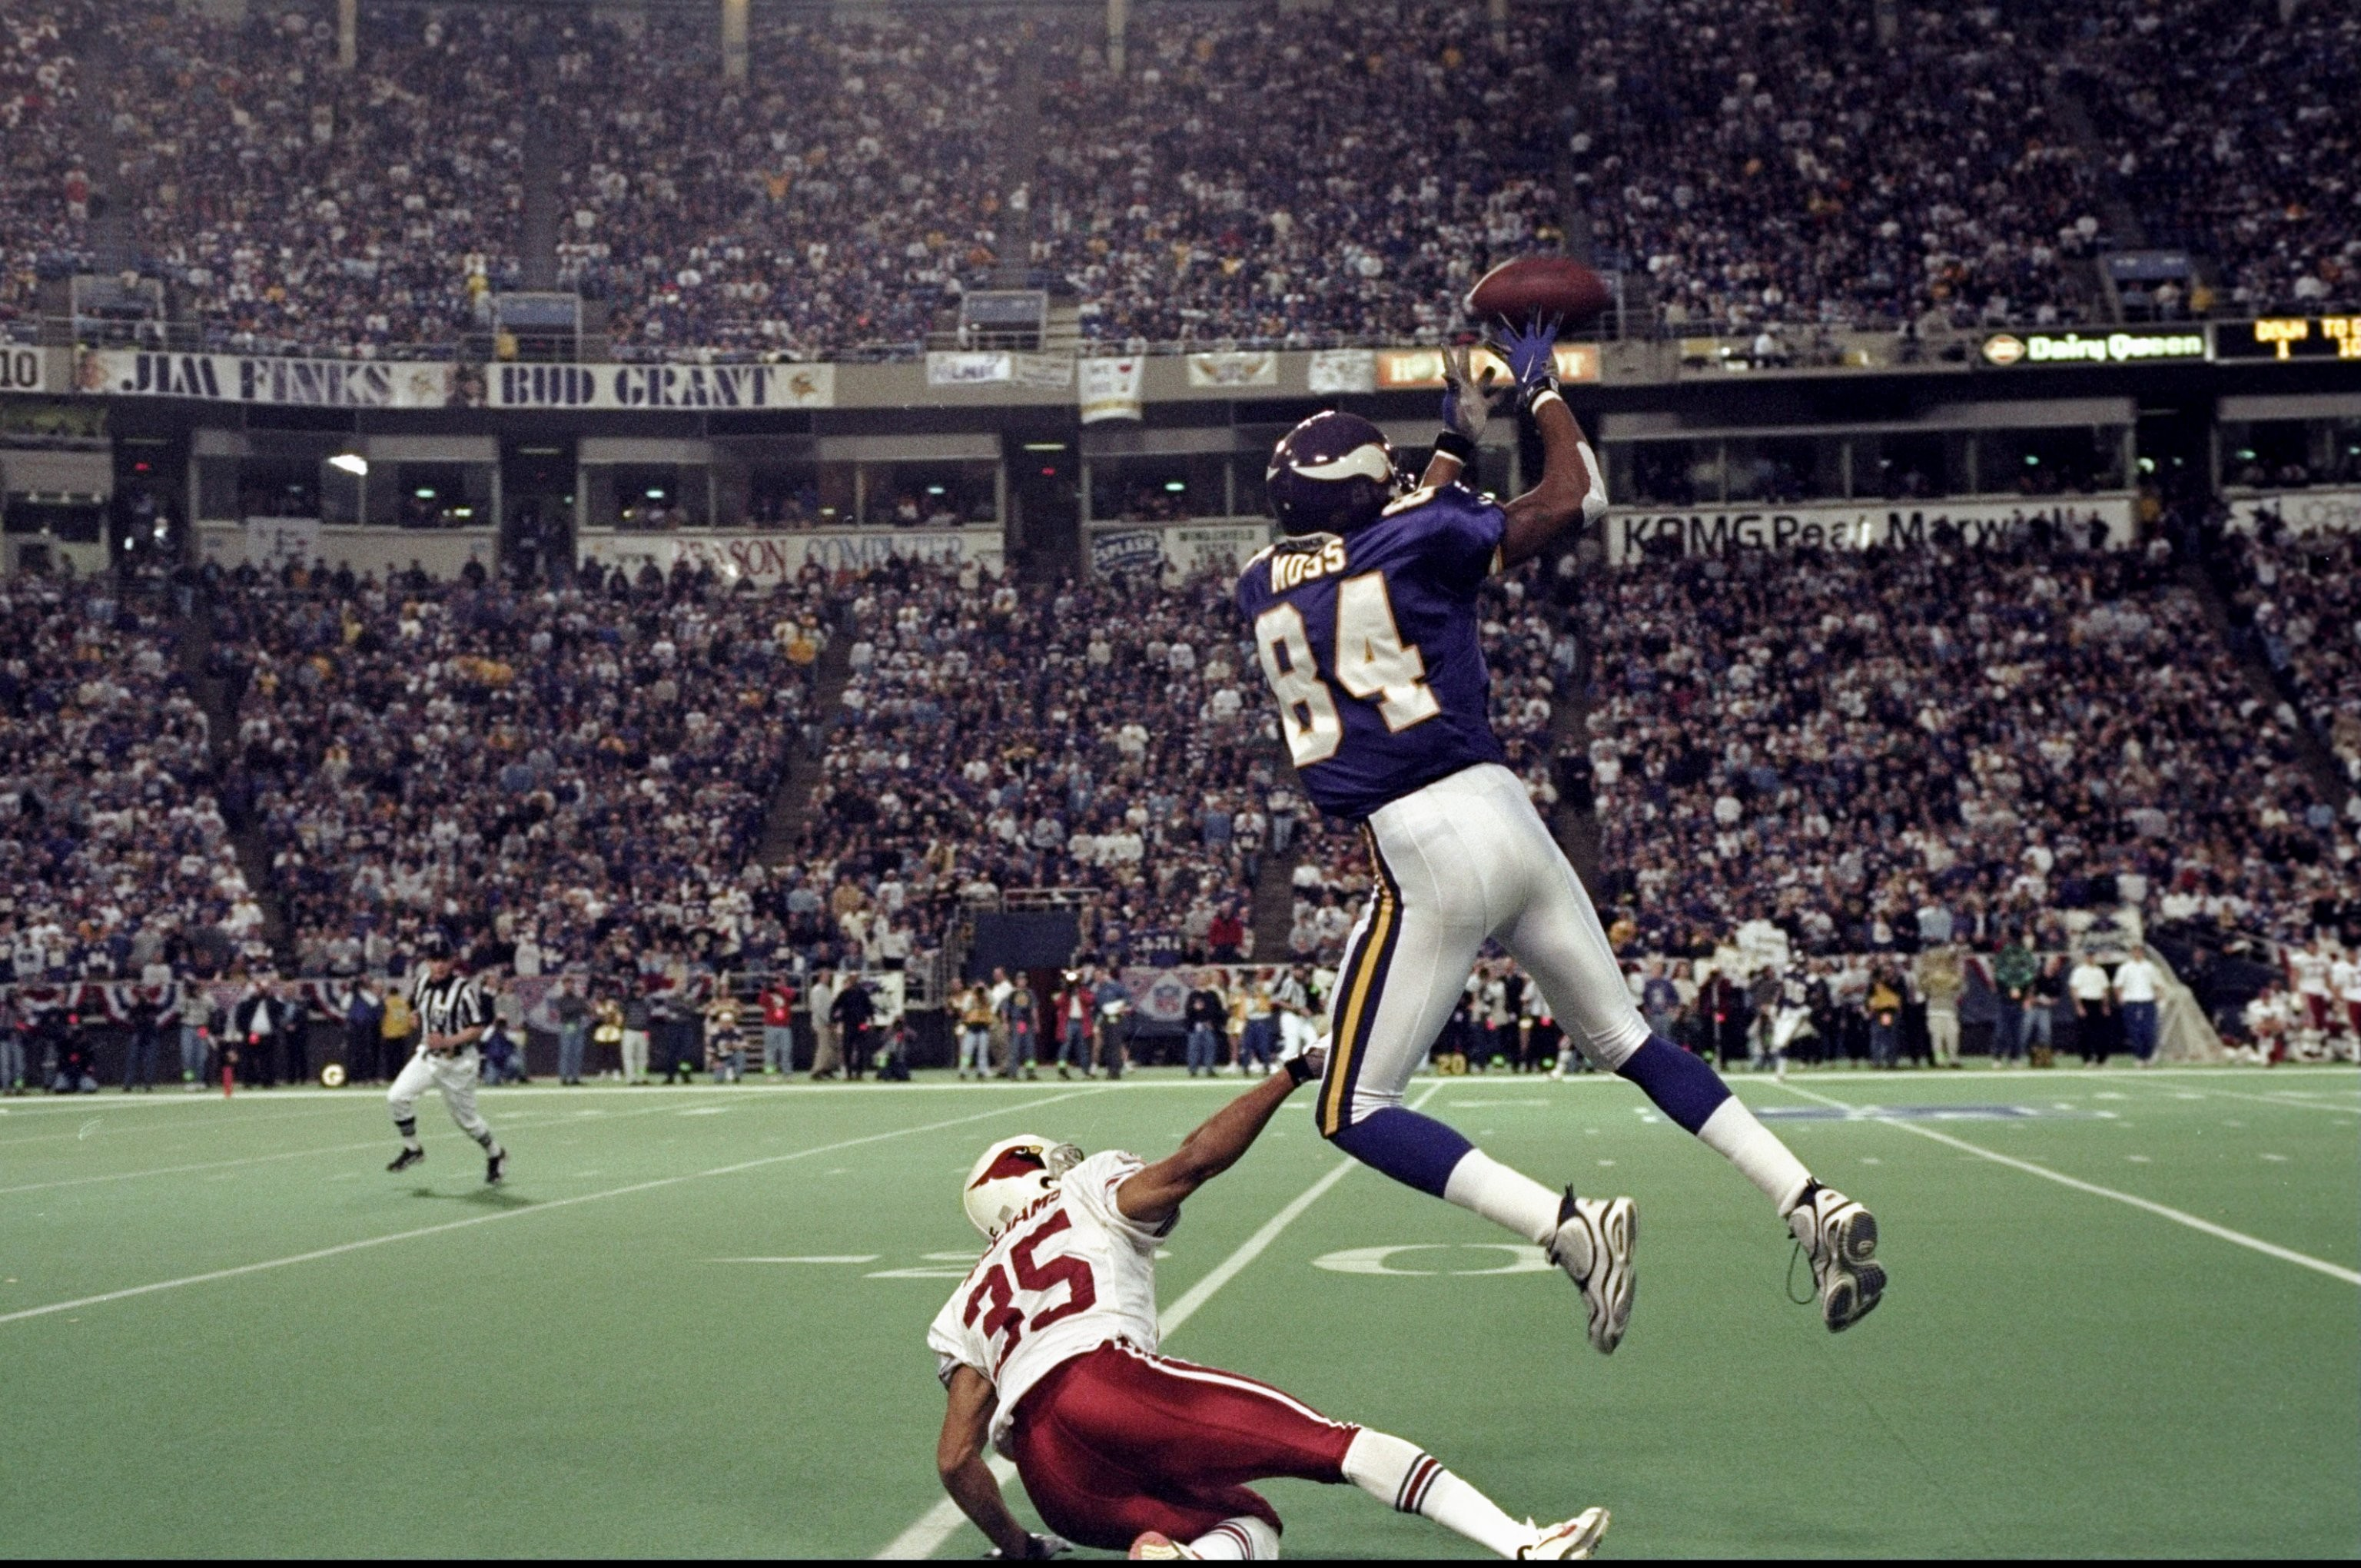 Res: 3072x2040, 10 Jan 1999: Randy Moss #84 of the Minnesota Vikings goes up for a